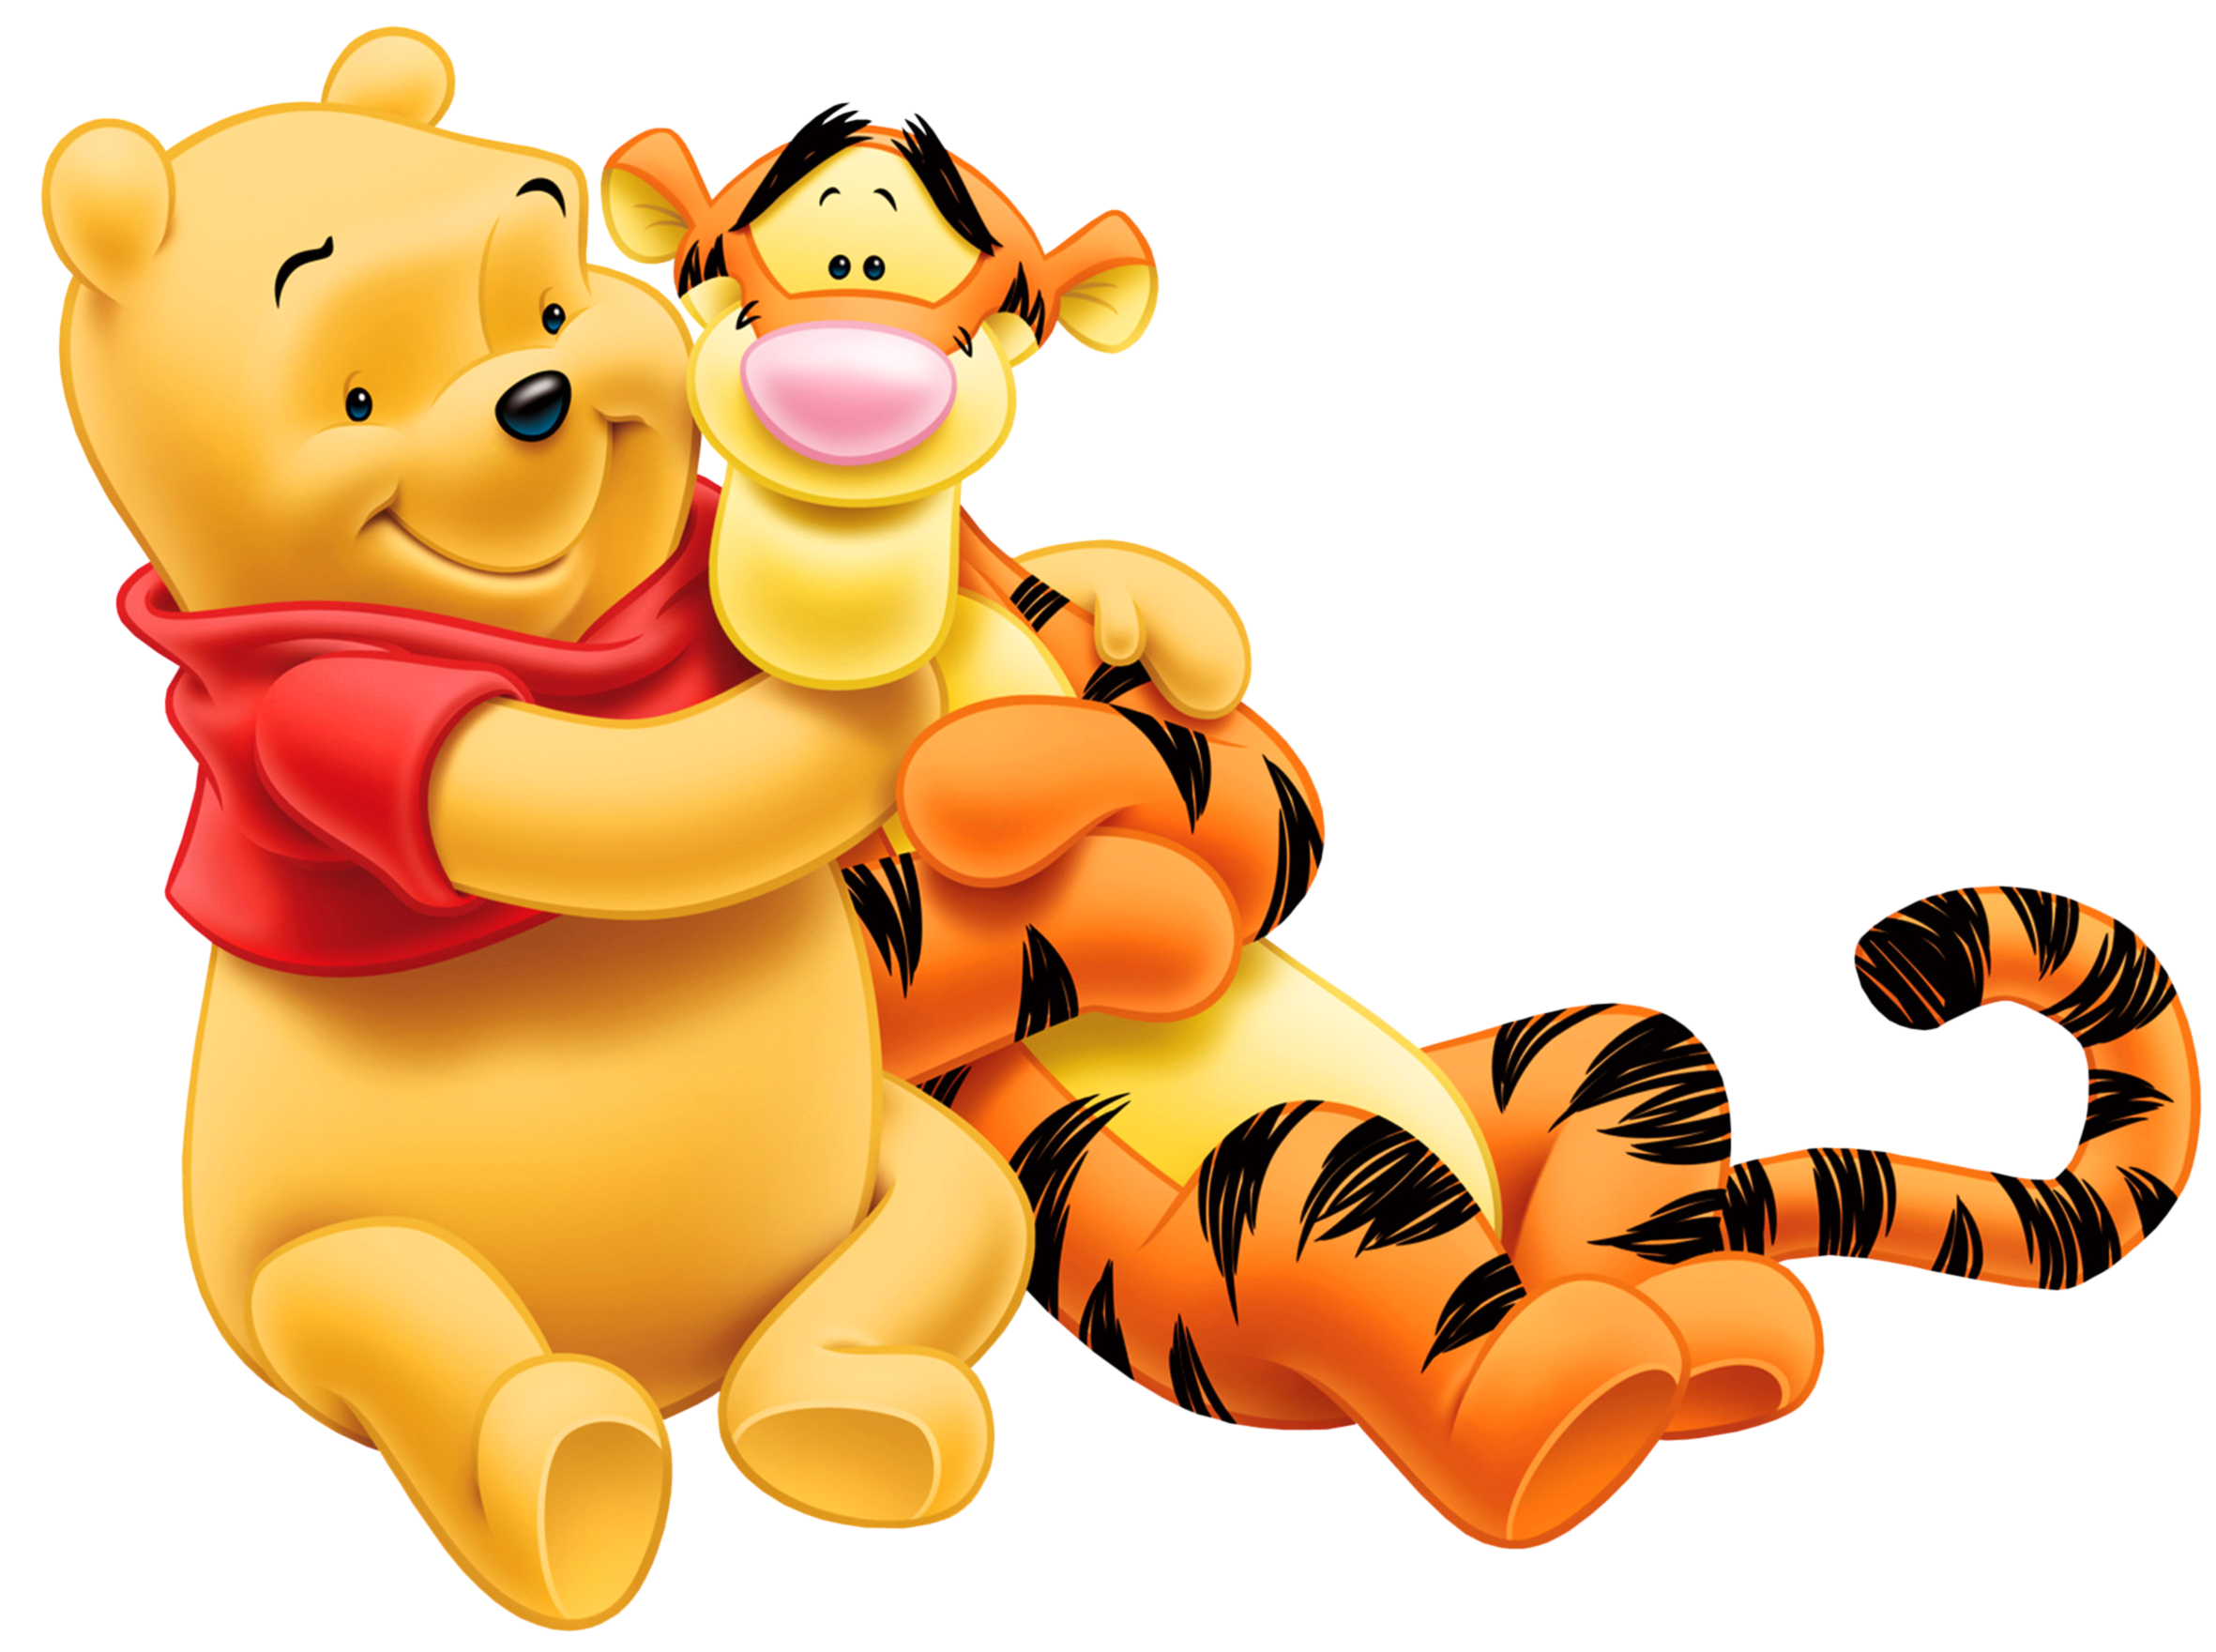 tigger transparent back